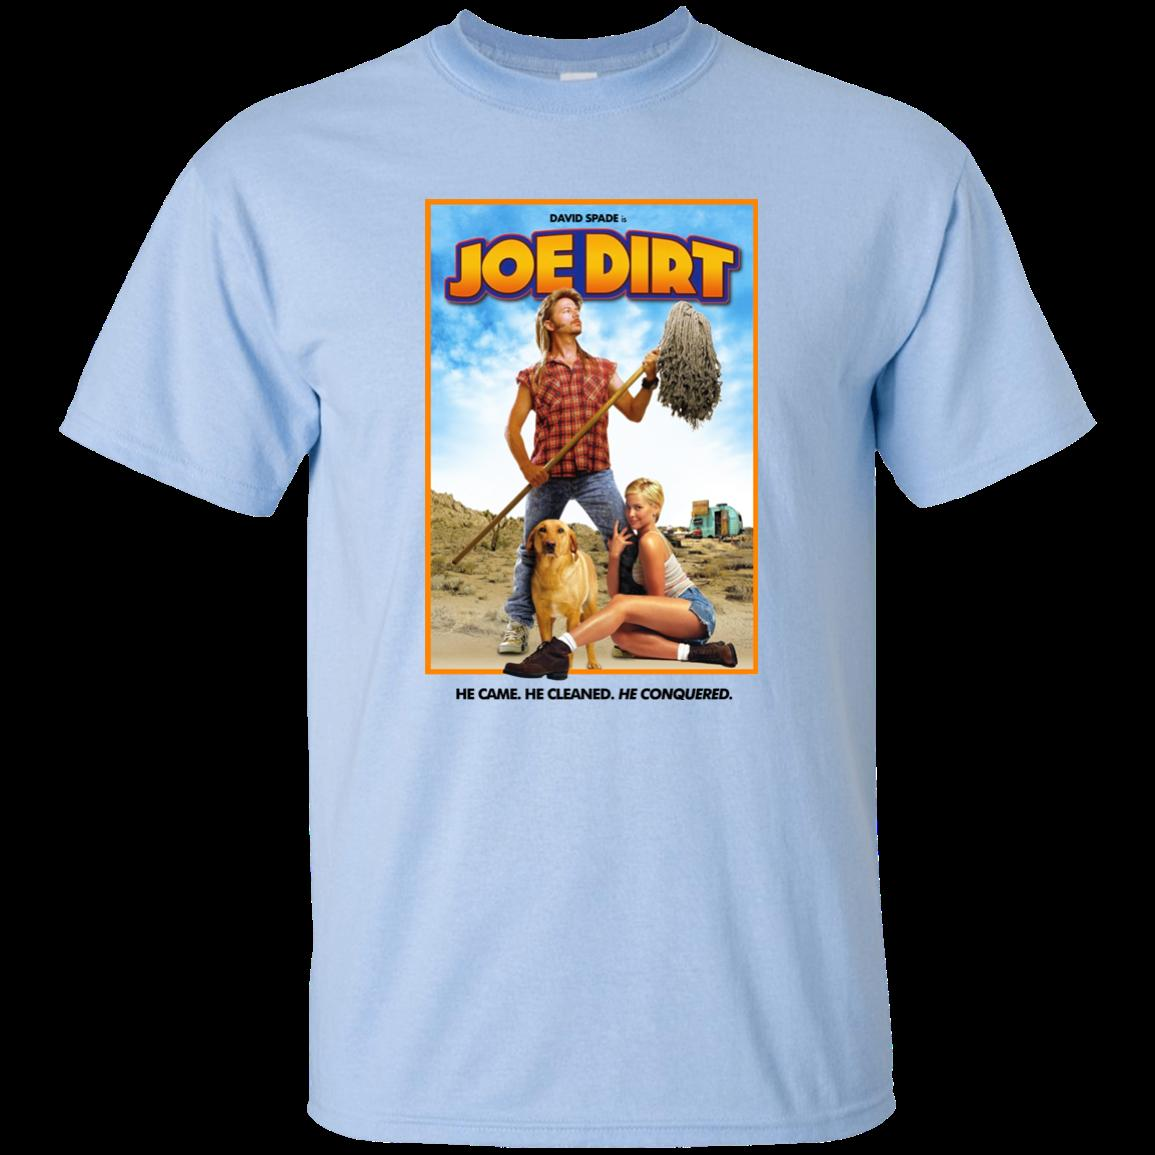 ff8a468d Joe Dirt, David Spade, Comedy, Janitor, Custodian, SNL, Funny, Movie, Cool  Casual Pride T Shirt Men Unisex New Discounted T Shirts Tee Shirt Of The  Day From ...